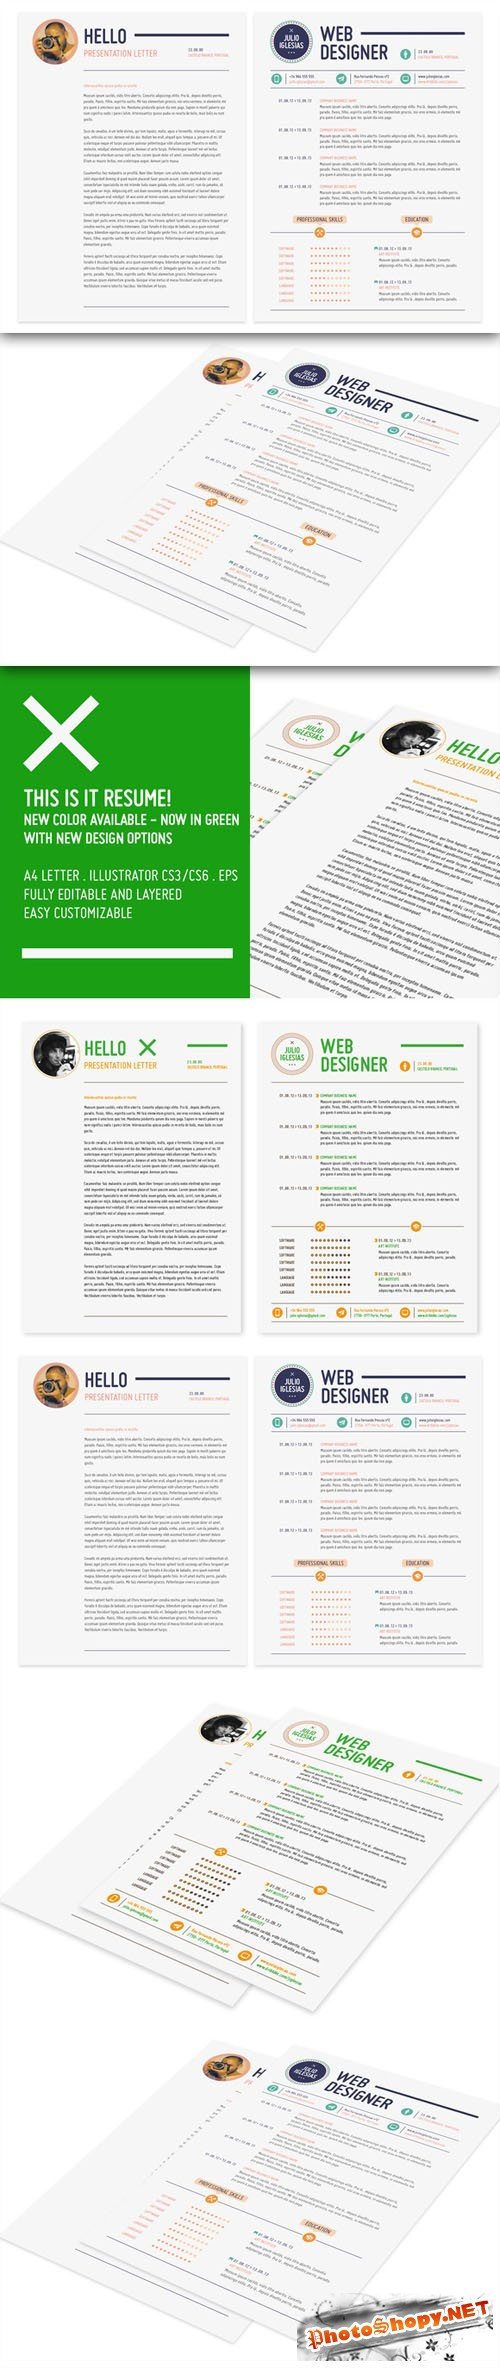 CreativeMarket - This is it Resume